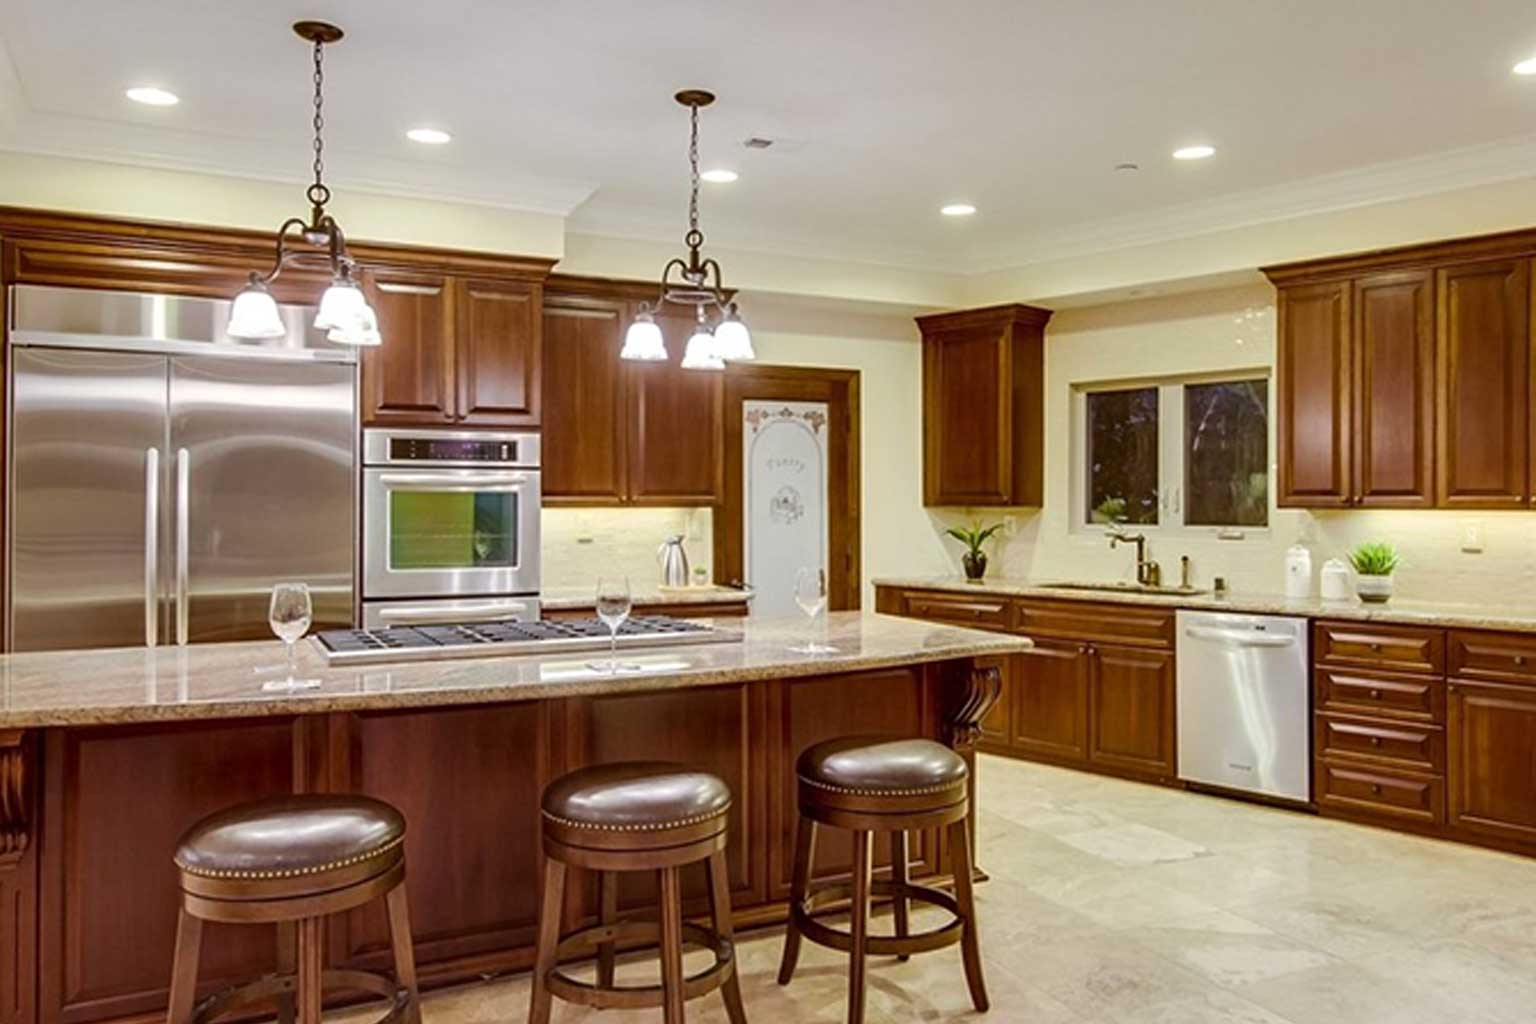 Design Regal Scripps Ranch Home Remodeling Custom Builder Regal Concepts And